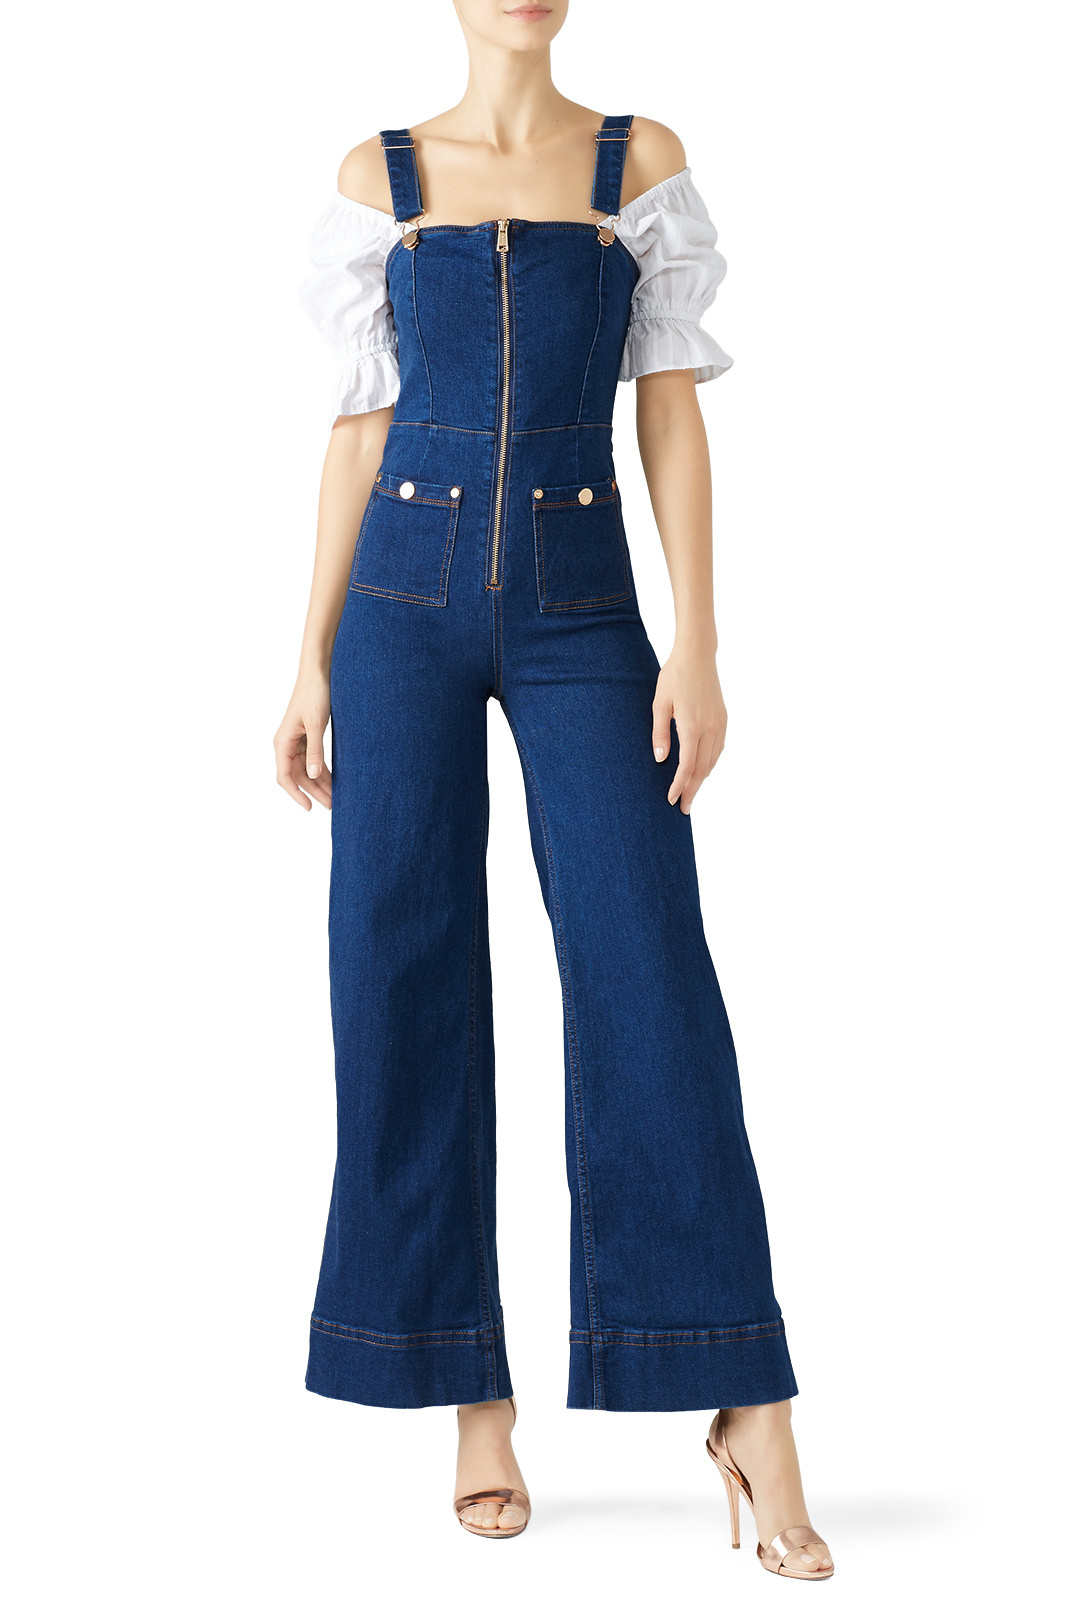 alice McCALL Quincy Overalls - I love me a statement piece and these overalls are just that! Pair them with a top or wear them on their own (SCANDY!!!)